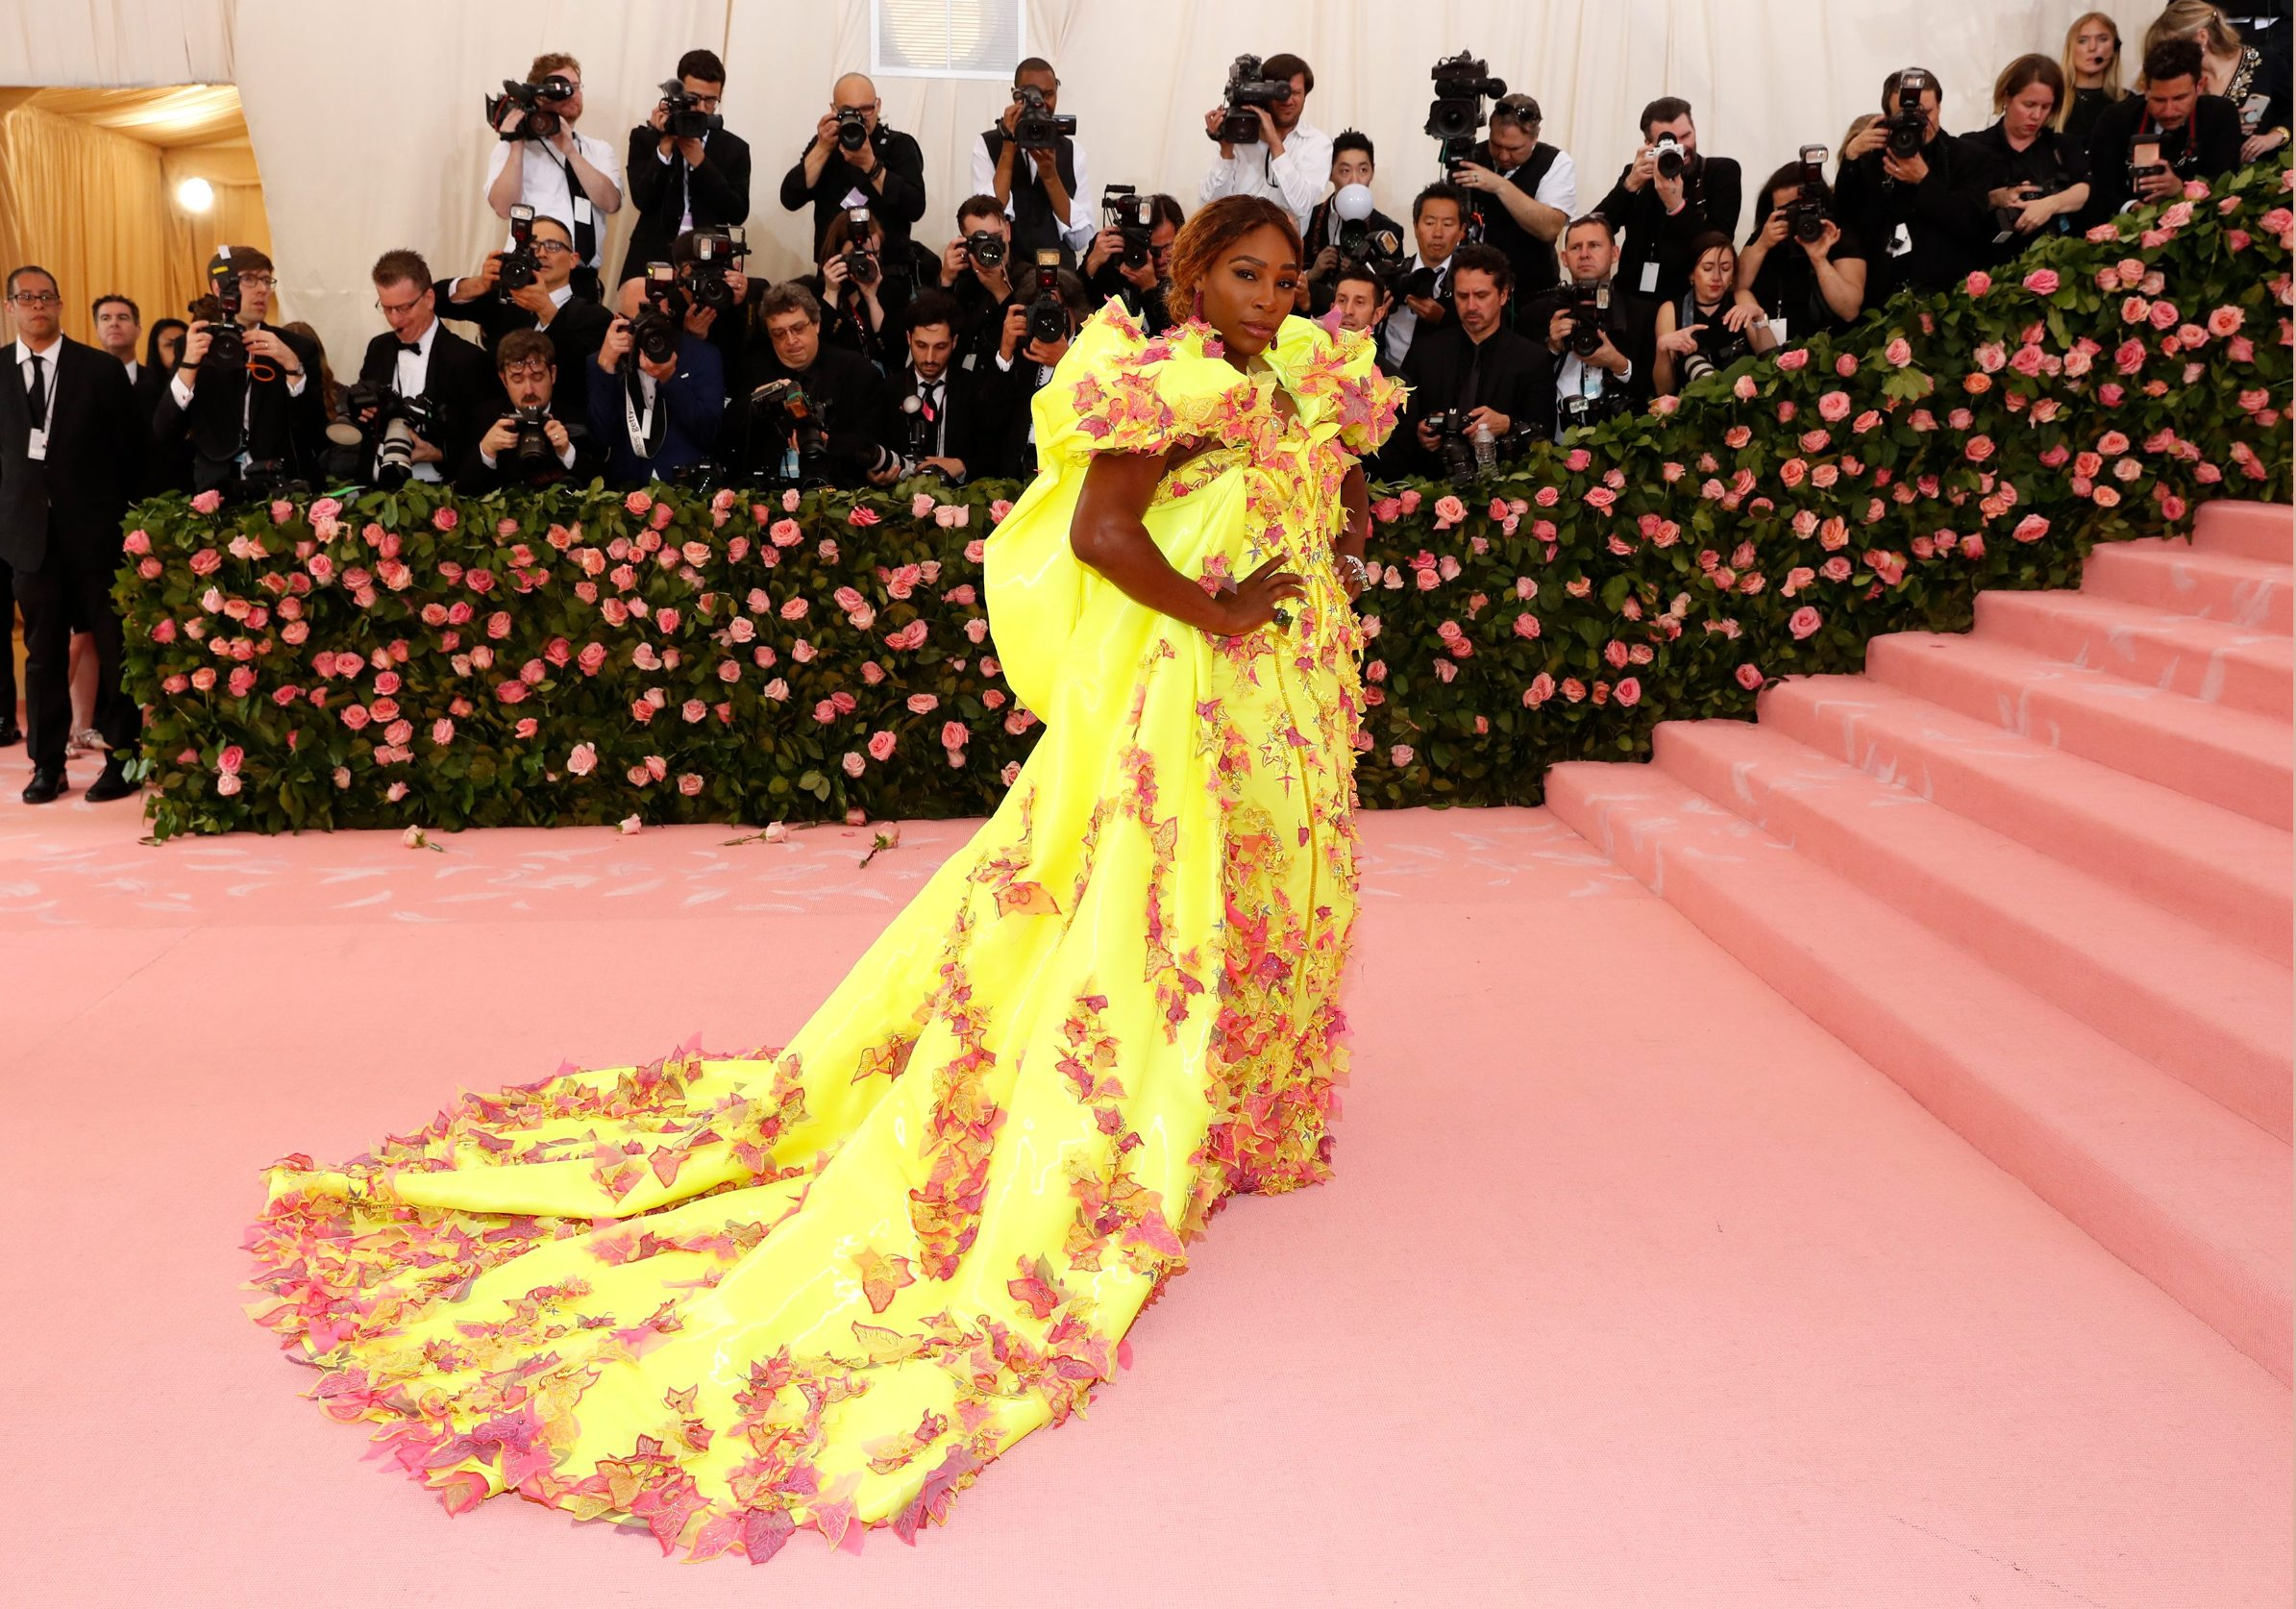 Metropolitan Museum of Art Costume Institute Gala - Met Gala - Camp: Notes on Fashion- Arrivals - New York City, U.S. Äi May 6, 2019 - Serena Williams. REUTERS/Andrew Kelly